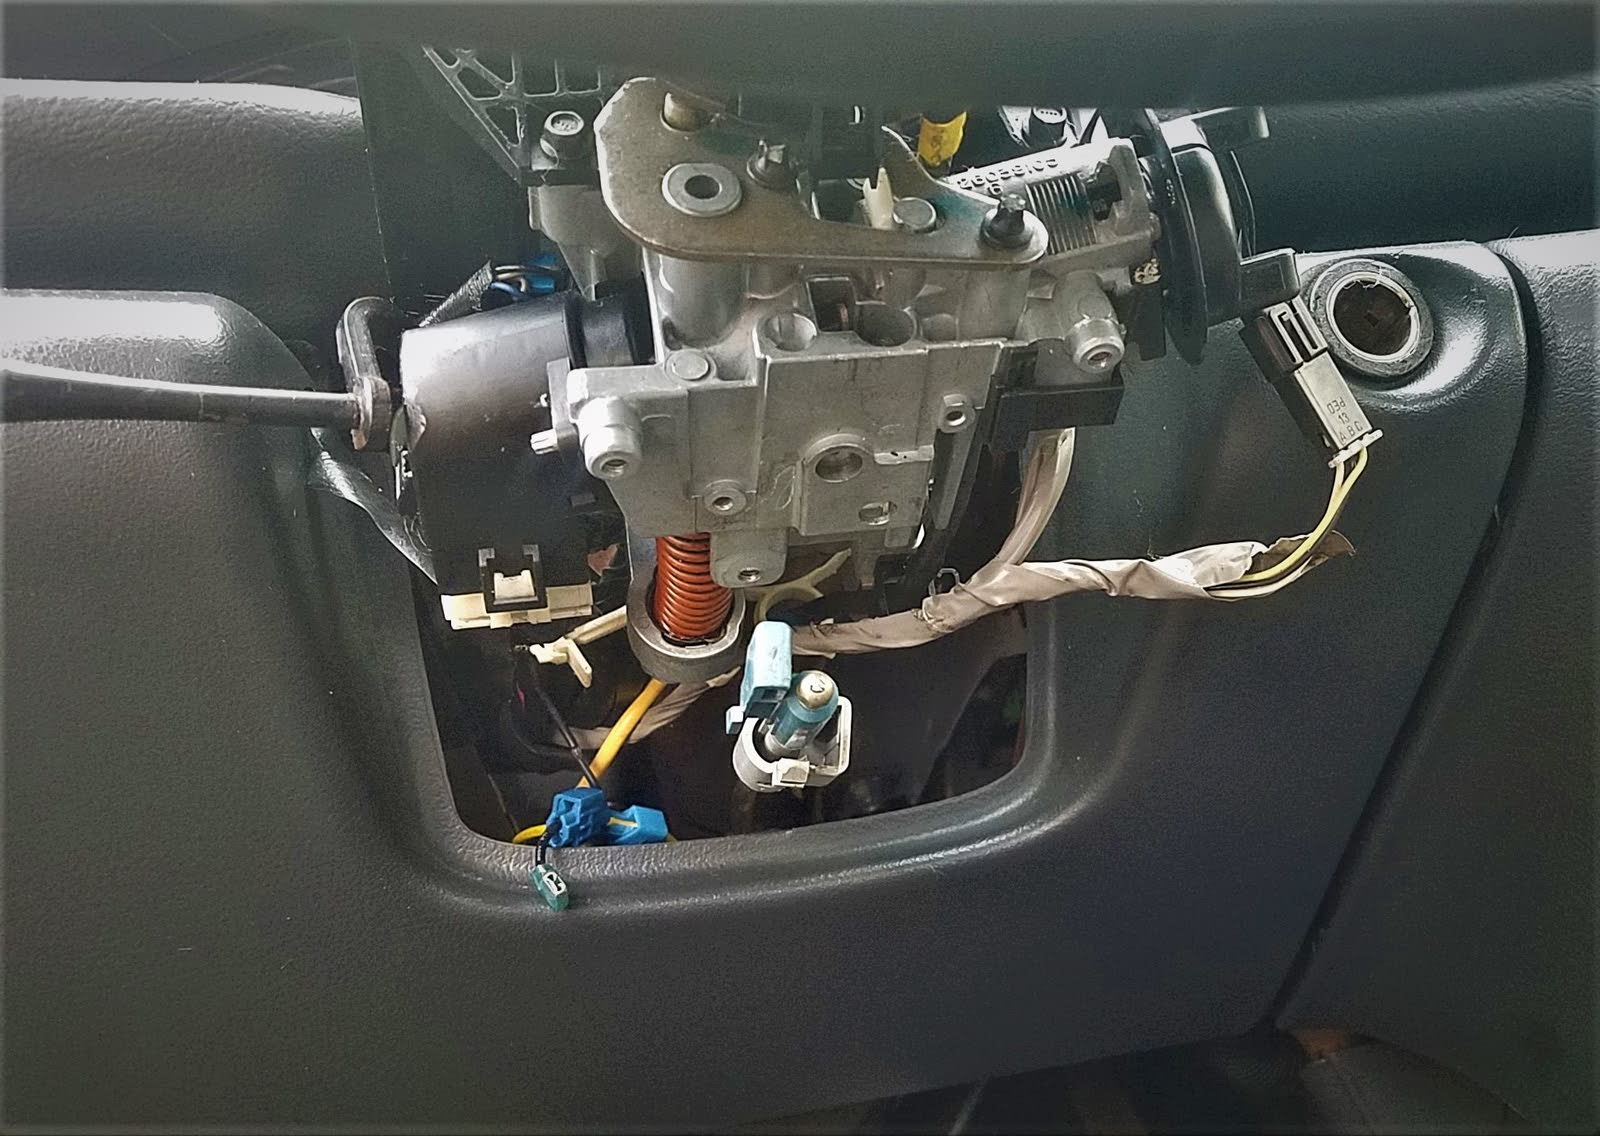 hight resolution of before you buy a new cylinder lock try removing park lock cable from the steering column if that fixes your problem then the park lock cable needs to be